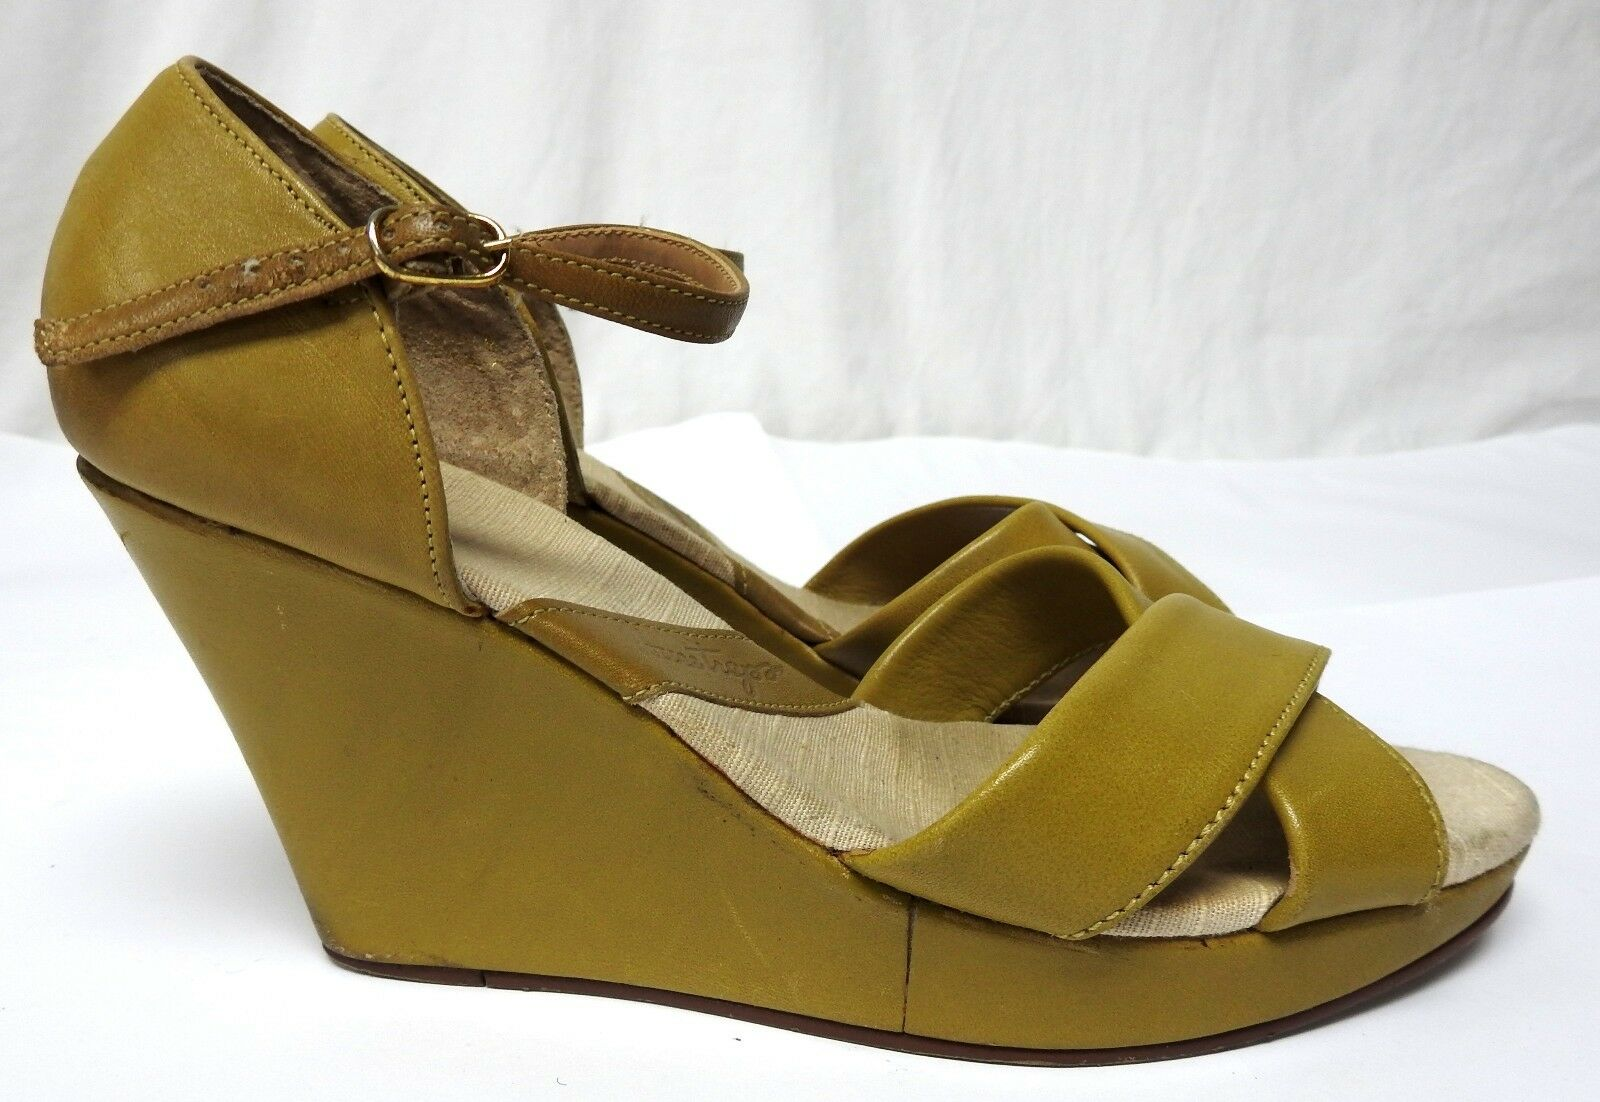 Green high heel wedge sandals open toe women's 7.5 7.5 women's leather shoes ankle strap 4e791e